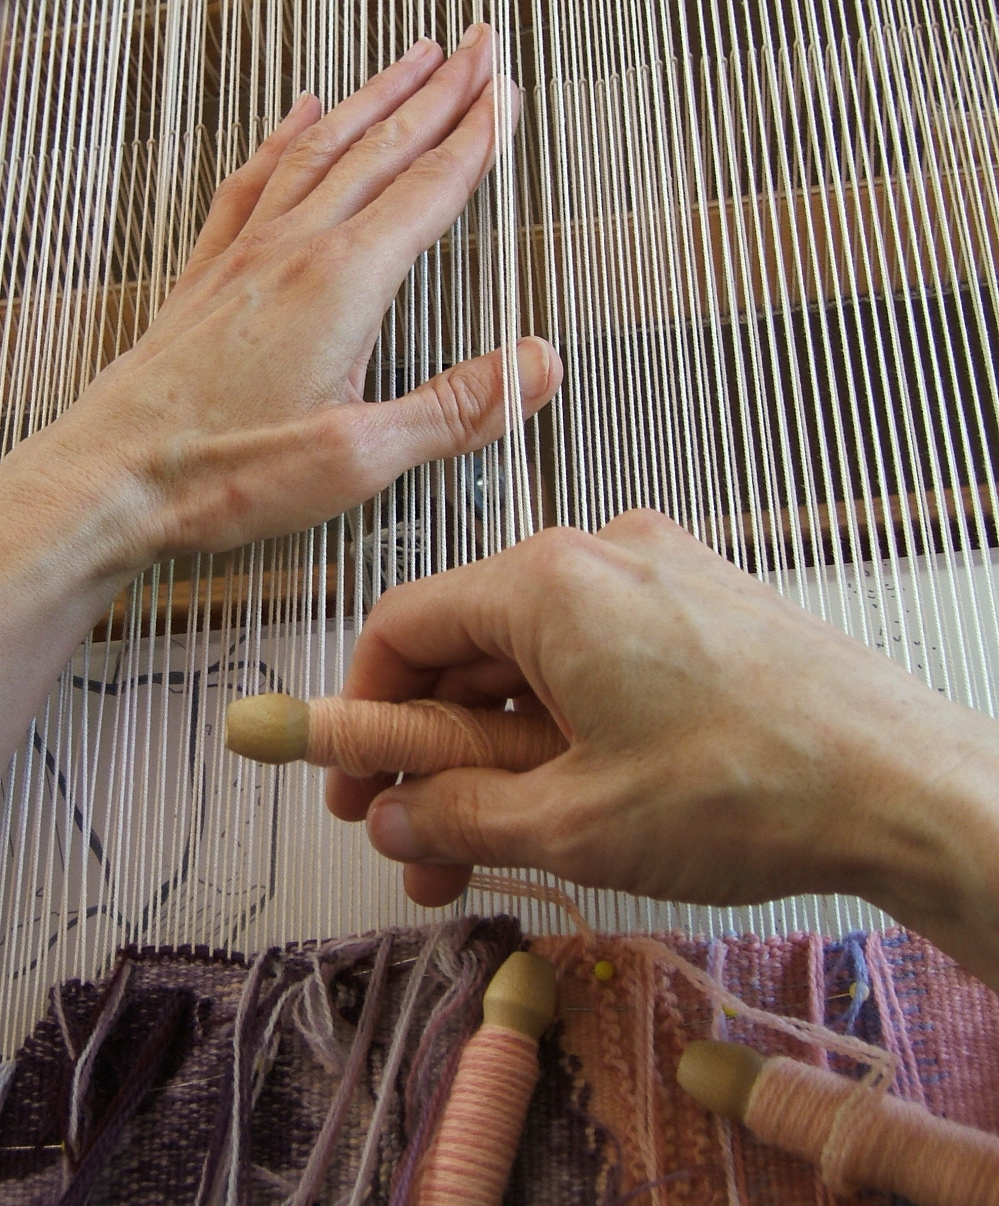 Elizabeth Buckley's hands weaving, with bobbins of crewel weight wool yarn.                                                       photo credit:  Lany Eila